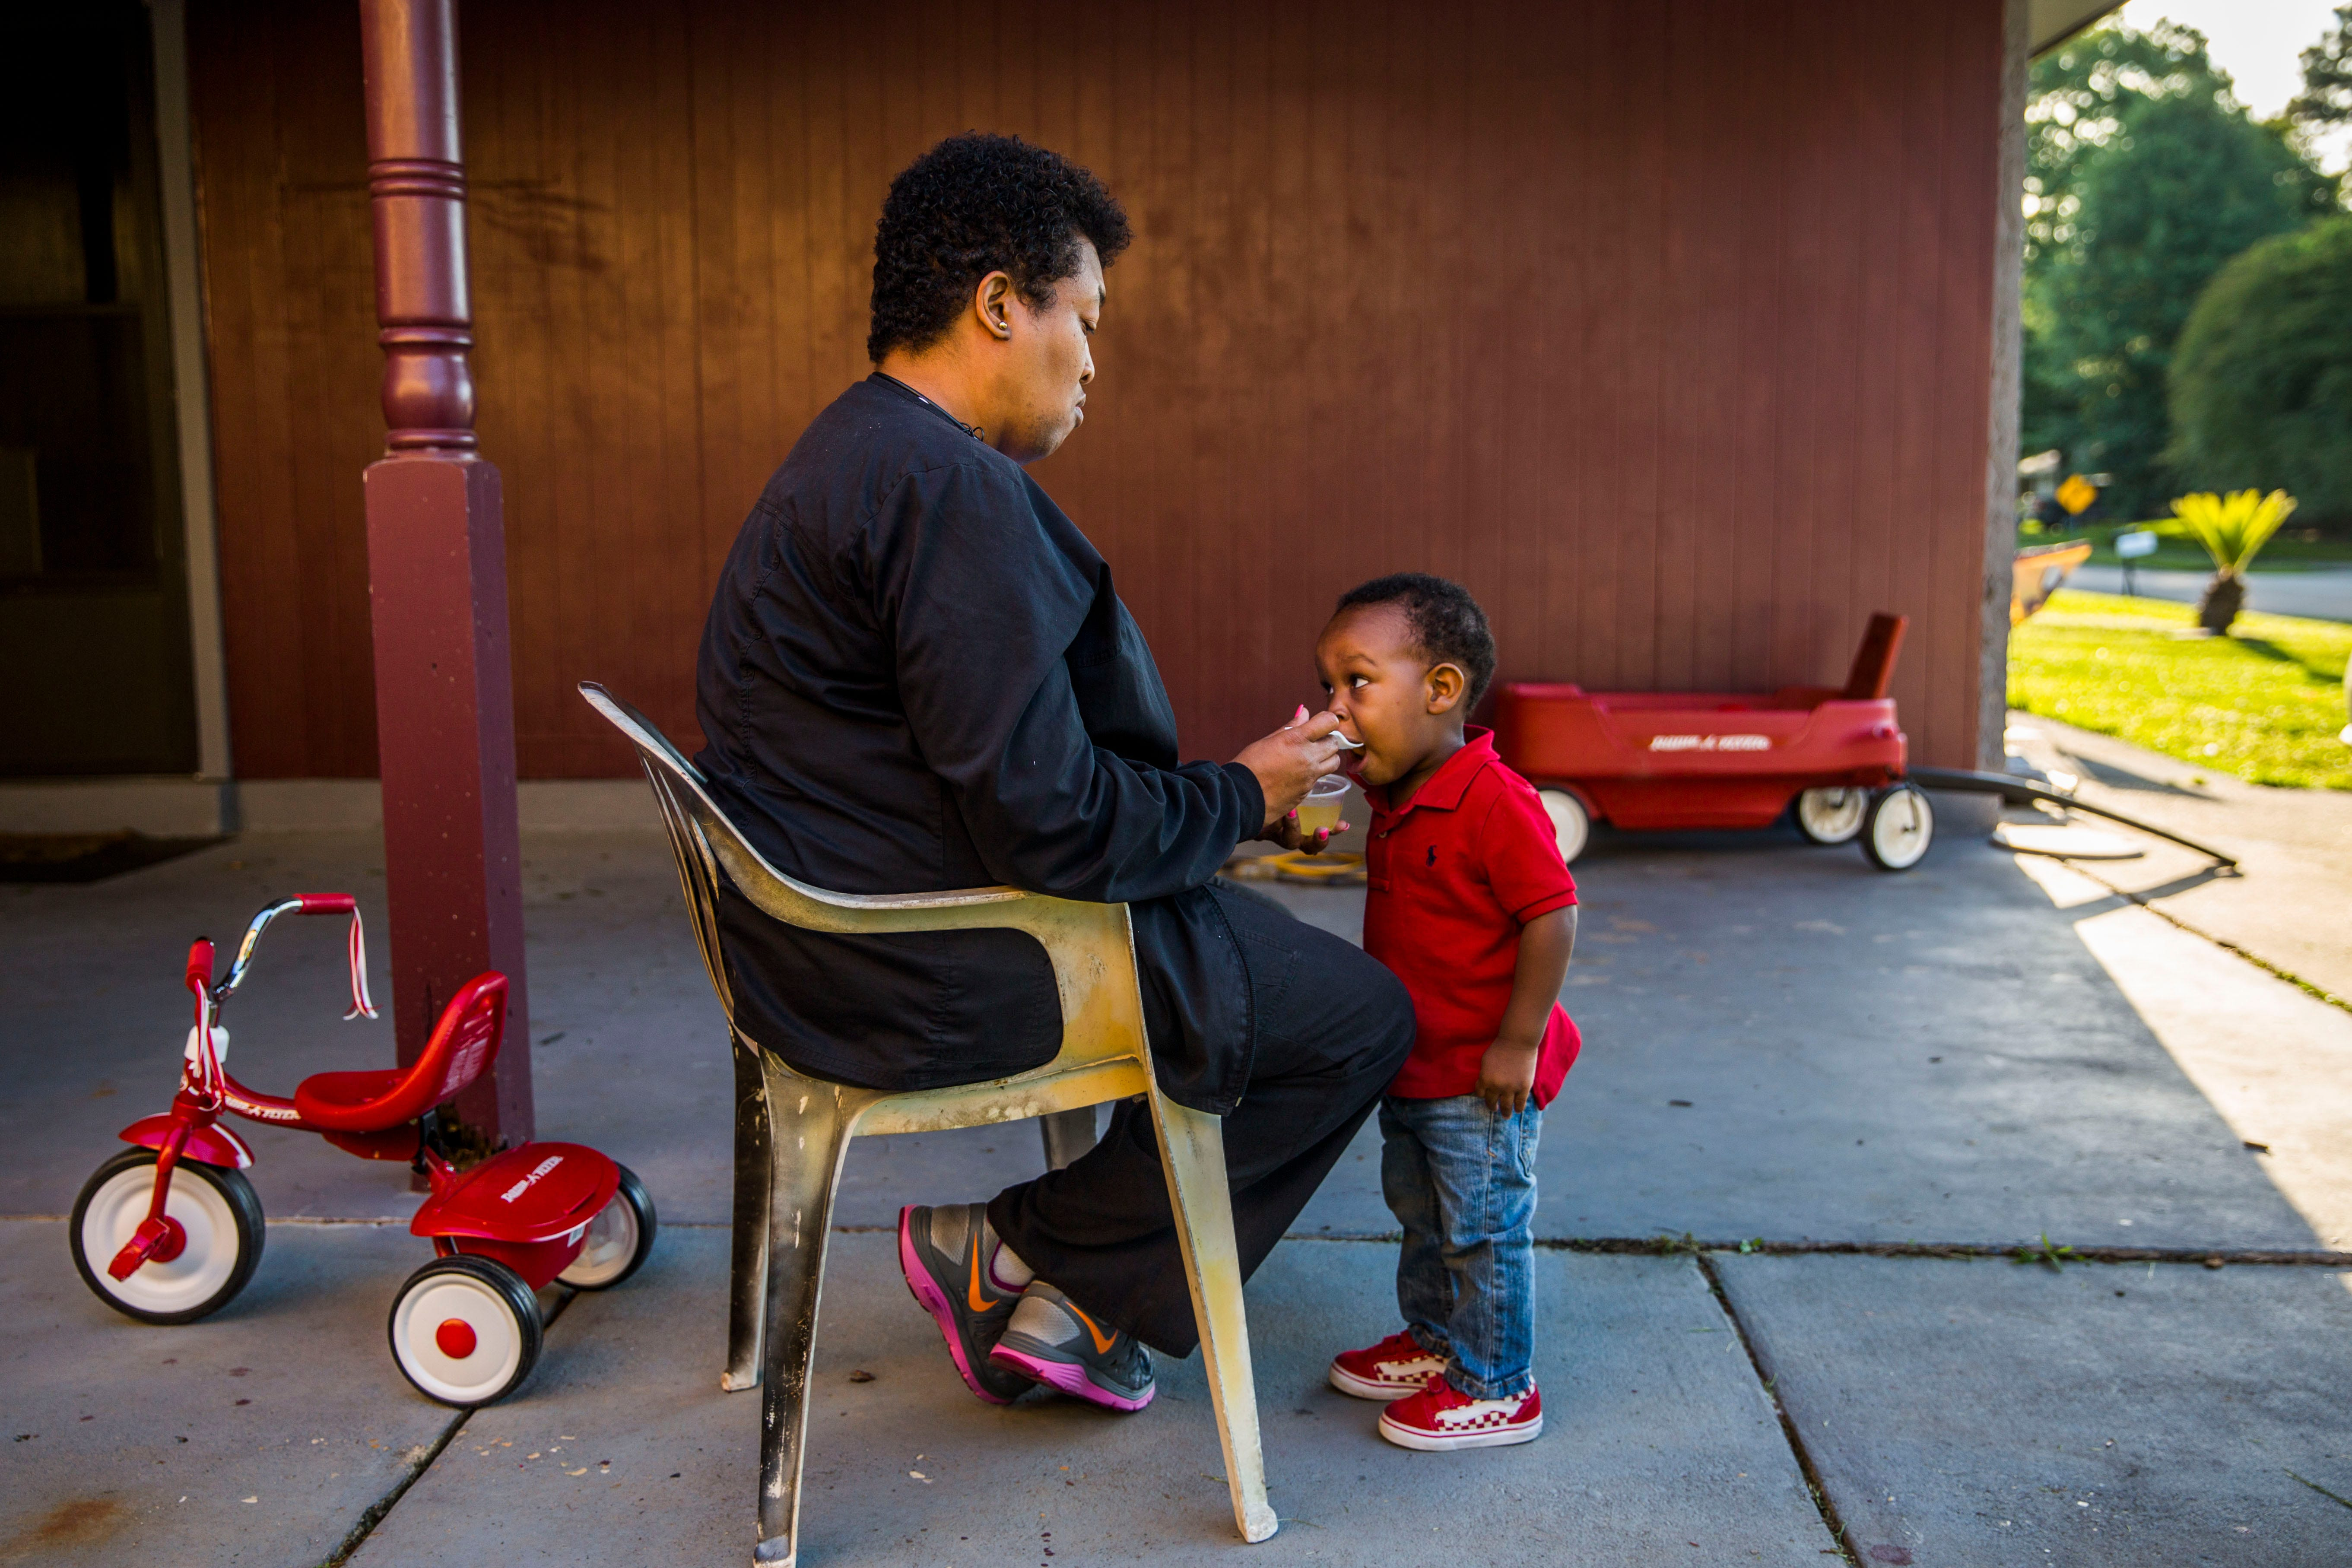 Felicia Robinson feeds Kason, now two-years-old, outside of his Baton Rouge home. After Kason's mother, Kizzy London, died from surgical complications at Jolie Plastic Surgery in December 2017, Robinson and other close family friends rallied around the young boy to help care for him.